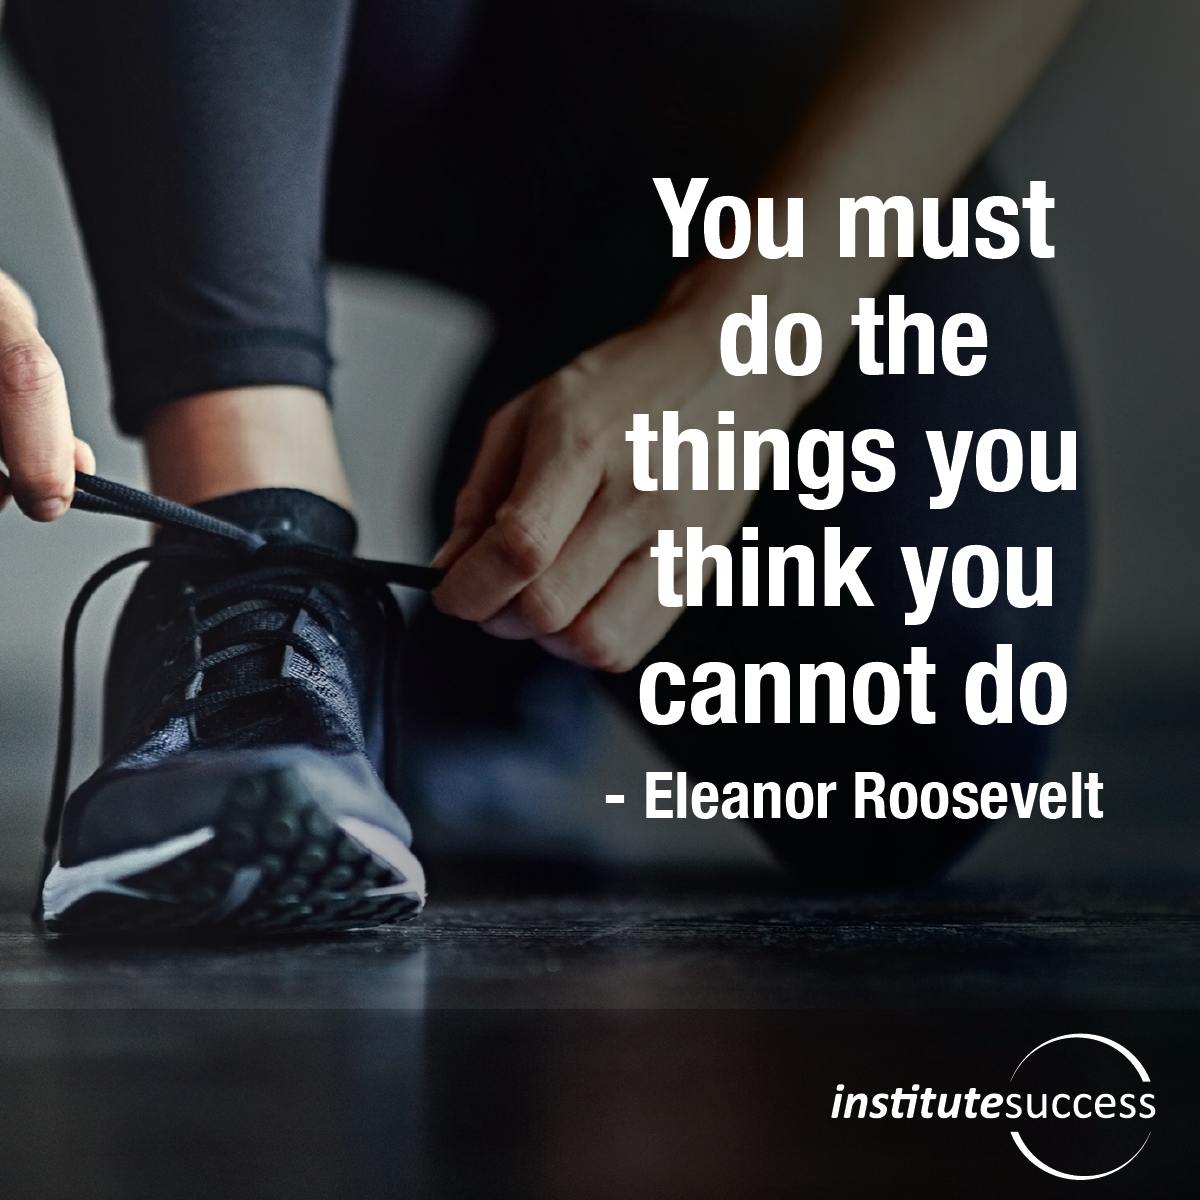 You must do the things you think you cannot do – Eleanor Roosevelt